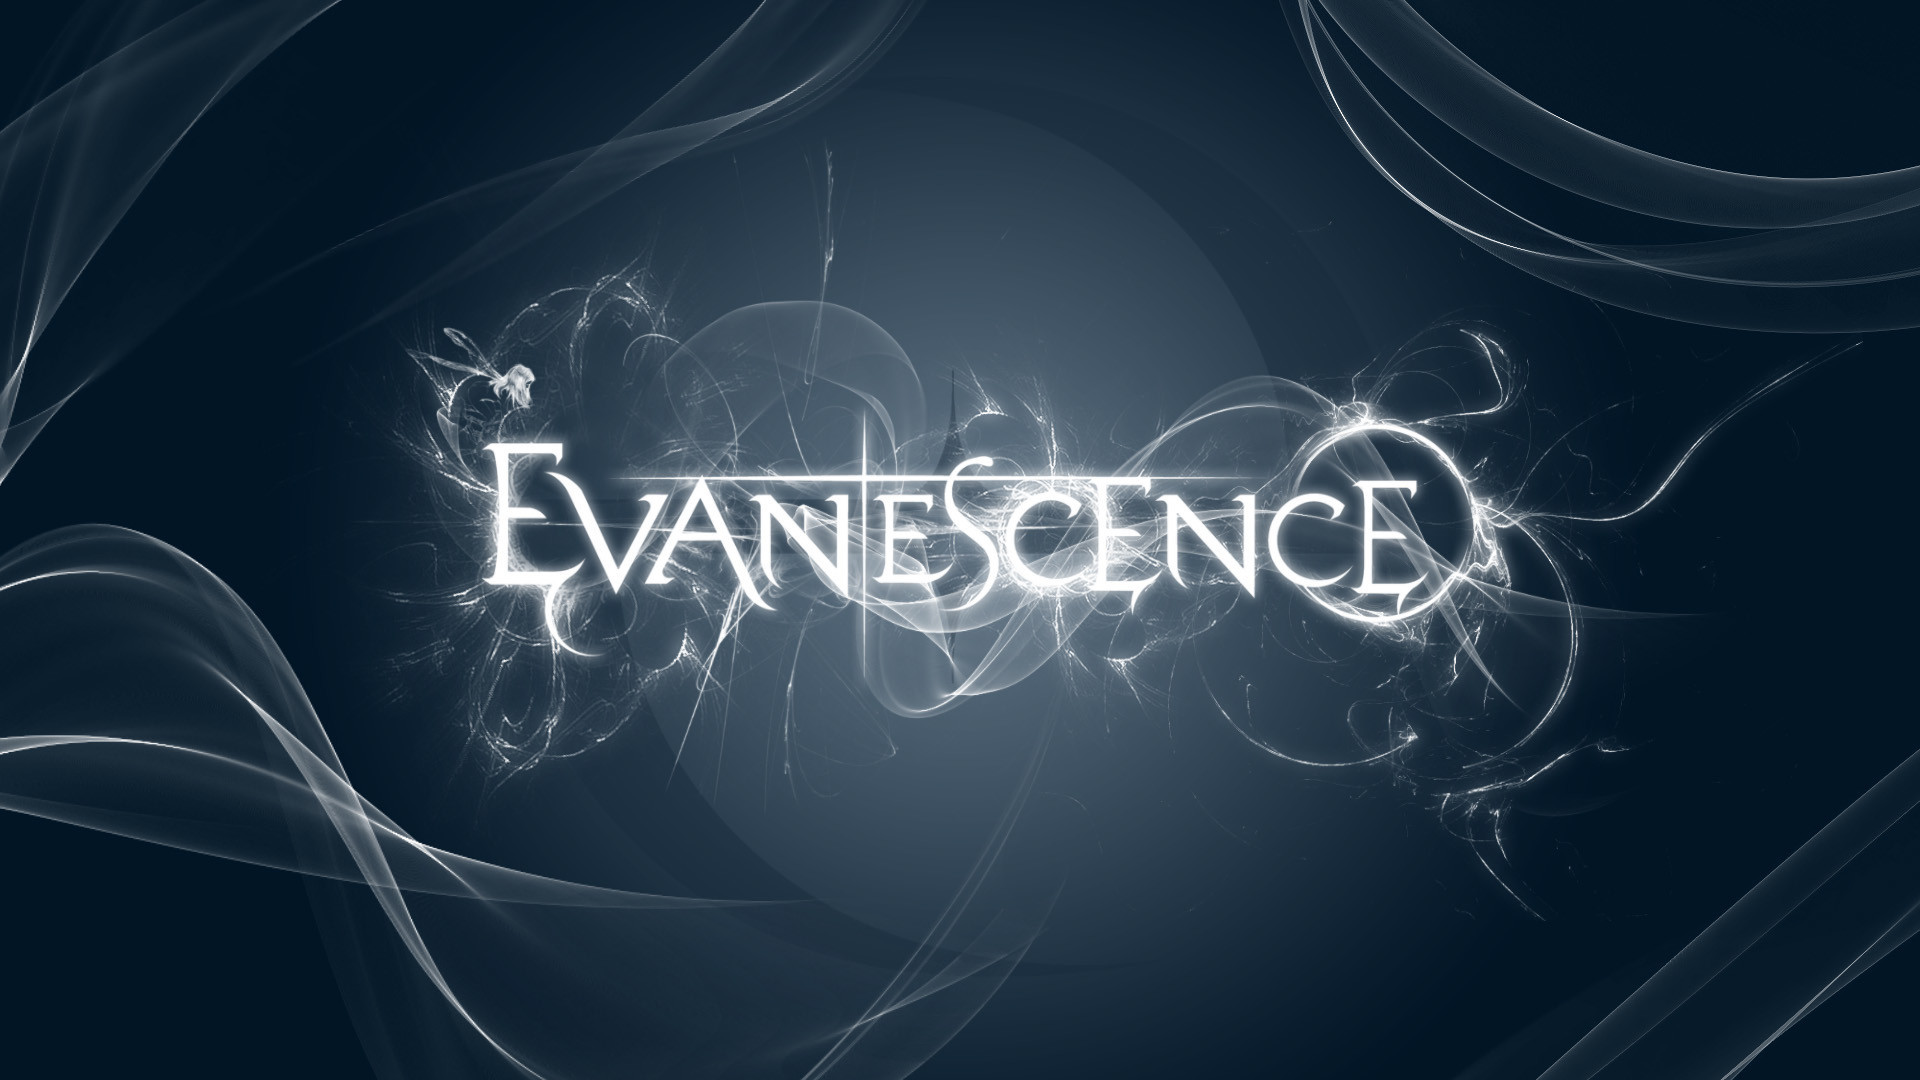 Evanescence Oceans Topsimages